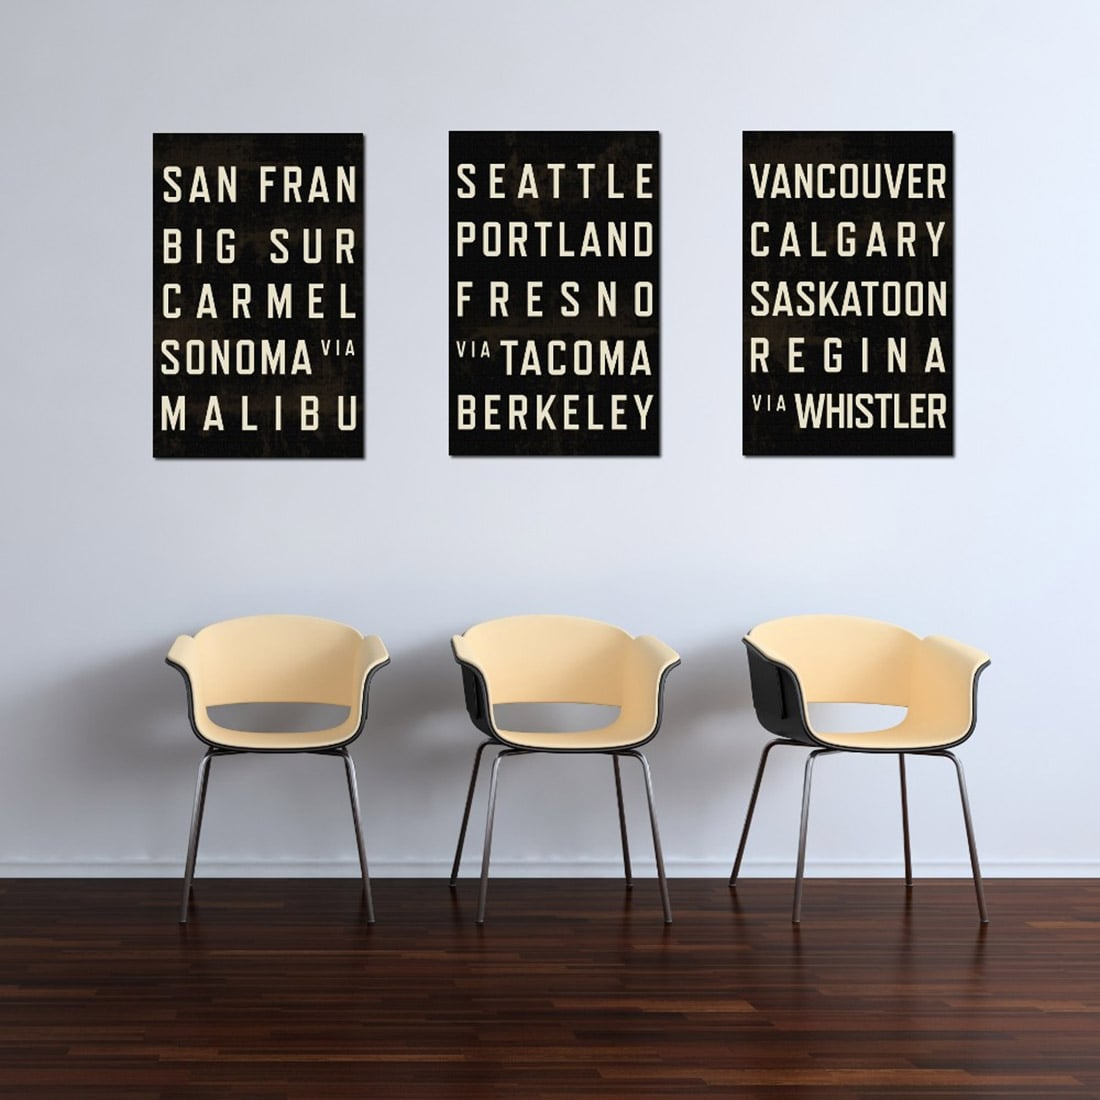 West Coast Subway Prints via Going Underground